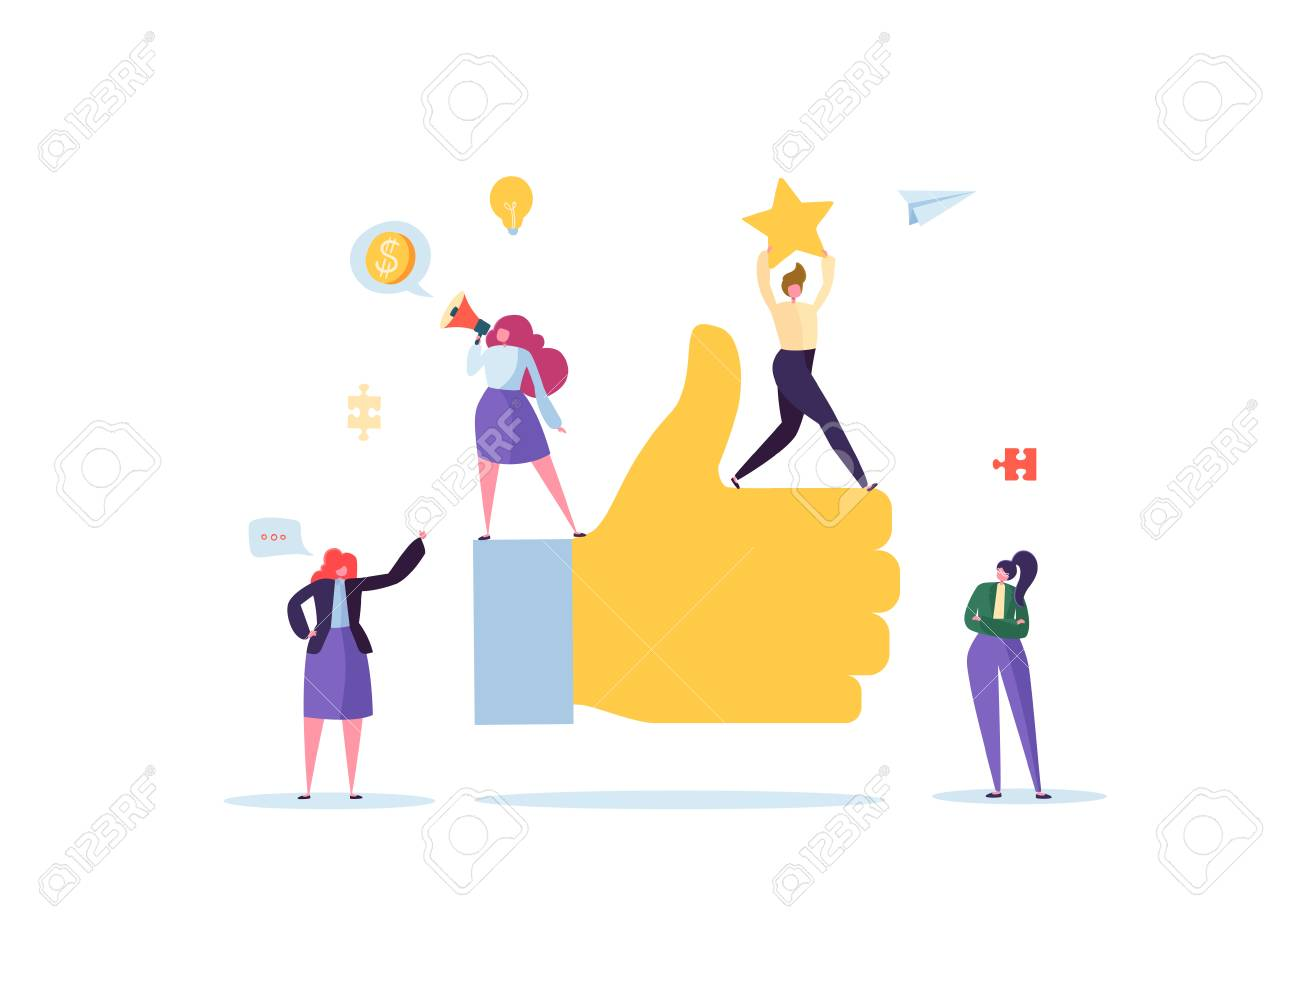 Big Hand with Thumb Up and Working Flat People Characters. Team Work Business Success Concept. Vector illustration - 109885139